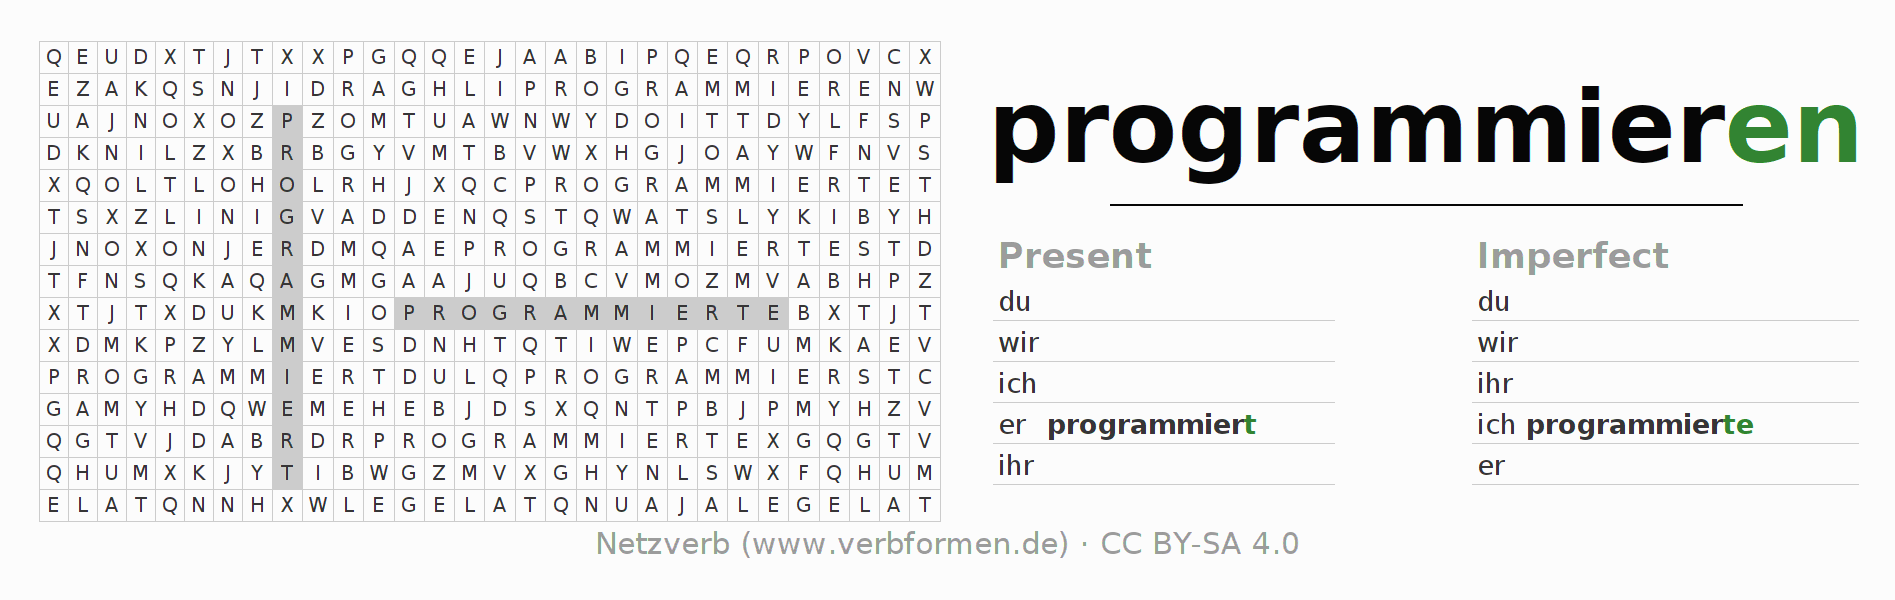 Word search puzzle for the conjugation of the verb programmieren